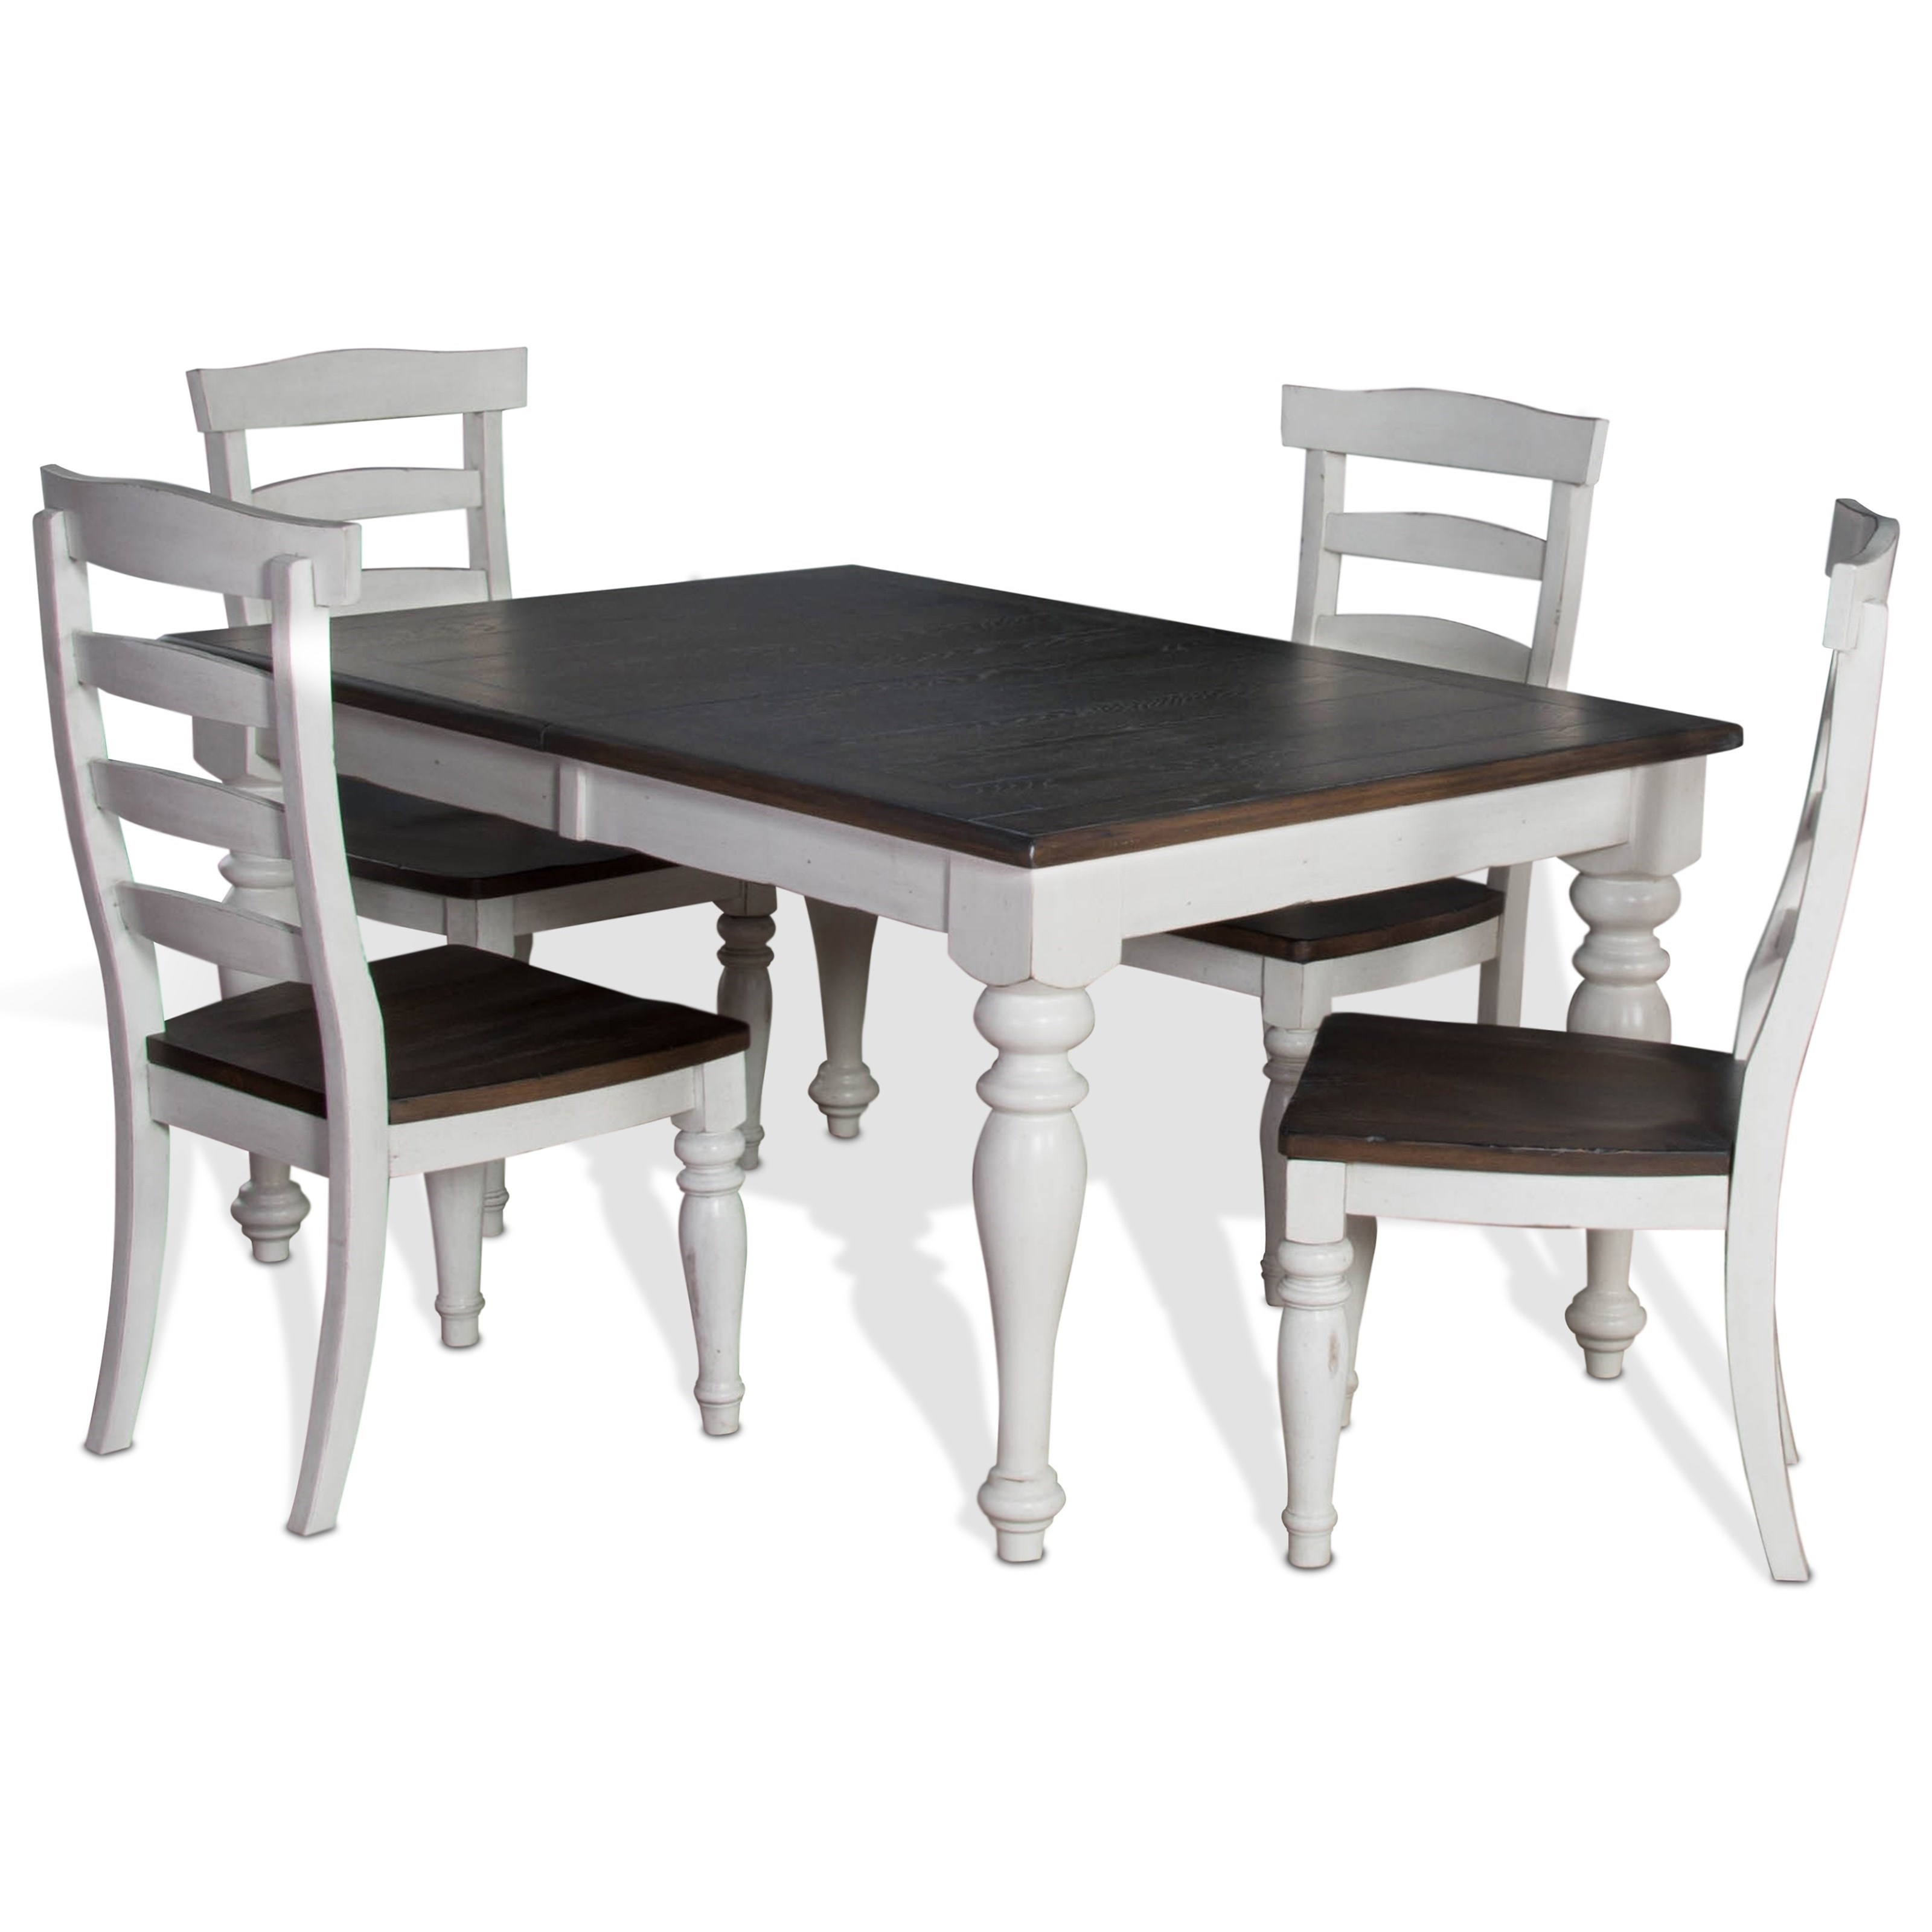 5 Piece Extension Dining Table Set With Ladderback Chairssunny Regarding Most Current Craftsman 7 Piece Rectangle Extension Dining Sets With Uph Side Chairs (Image 1 of 20)